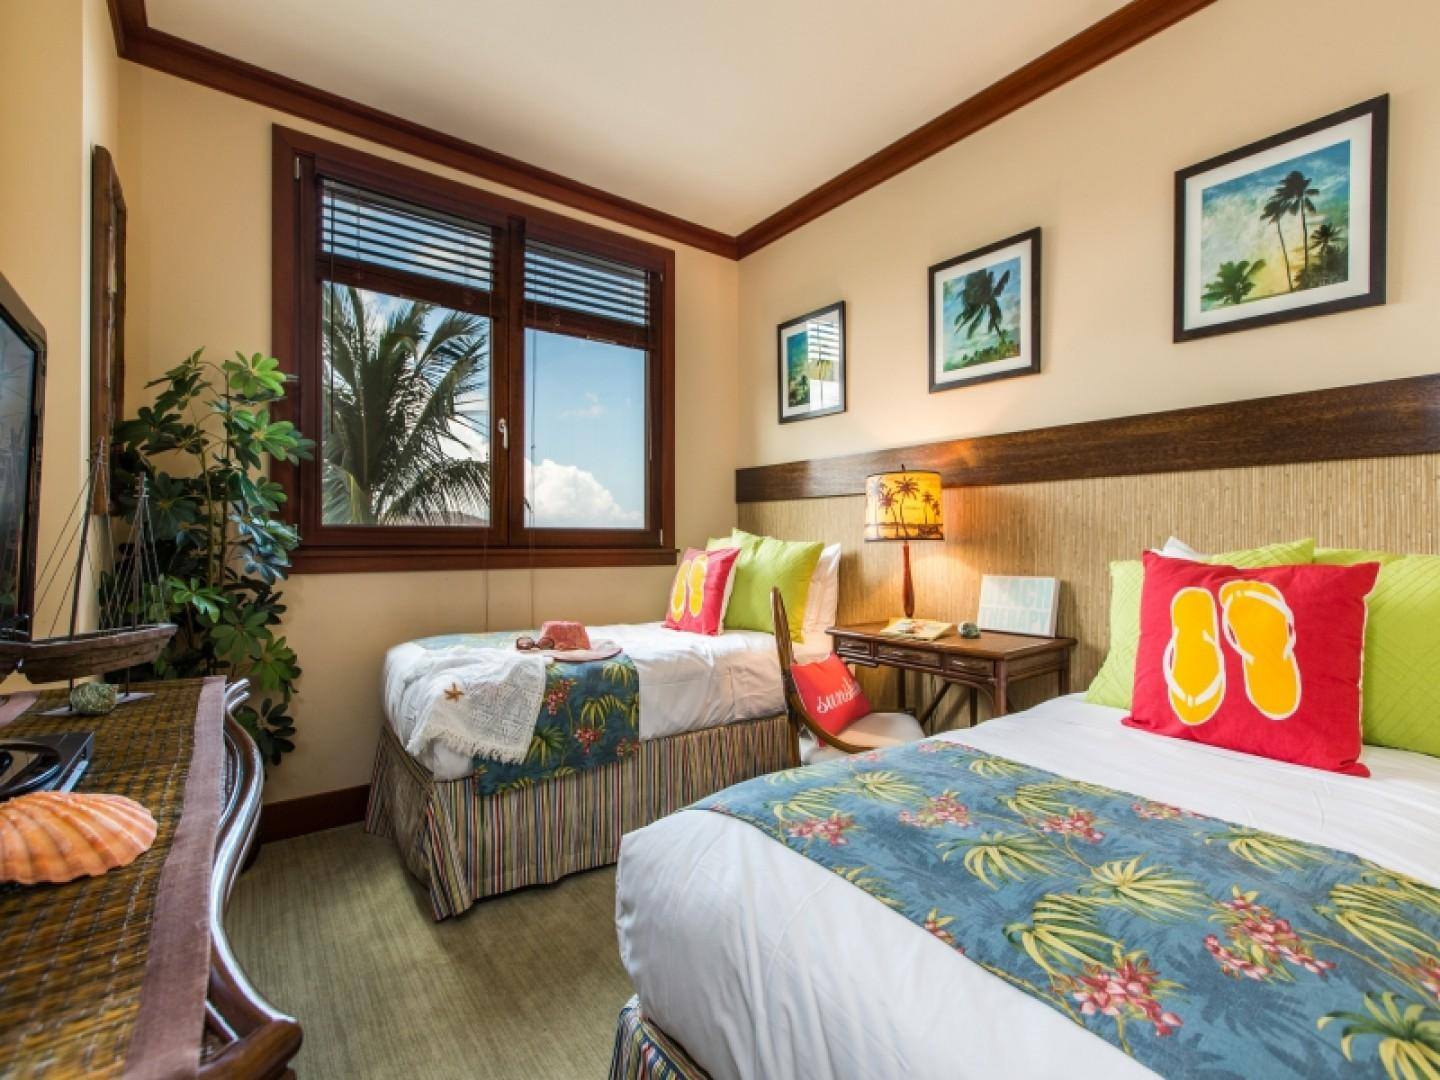 Guest bedroom has two twin beds which can also be converted to a king size bed upon request